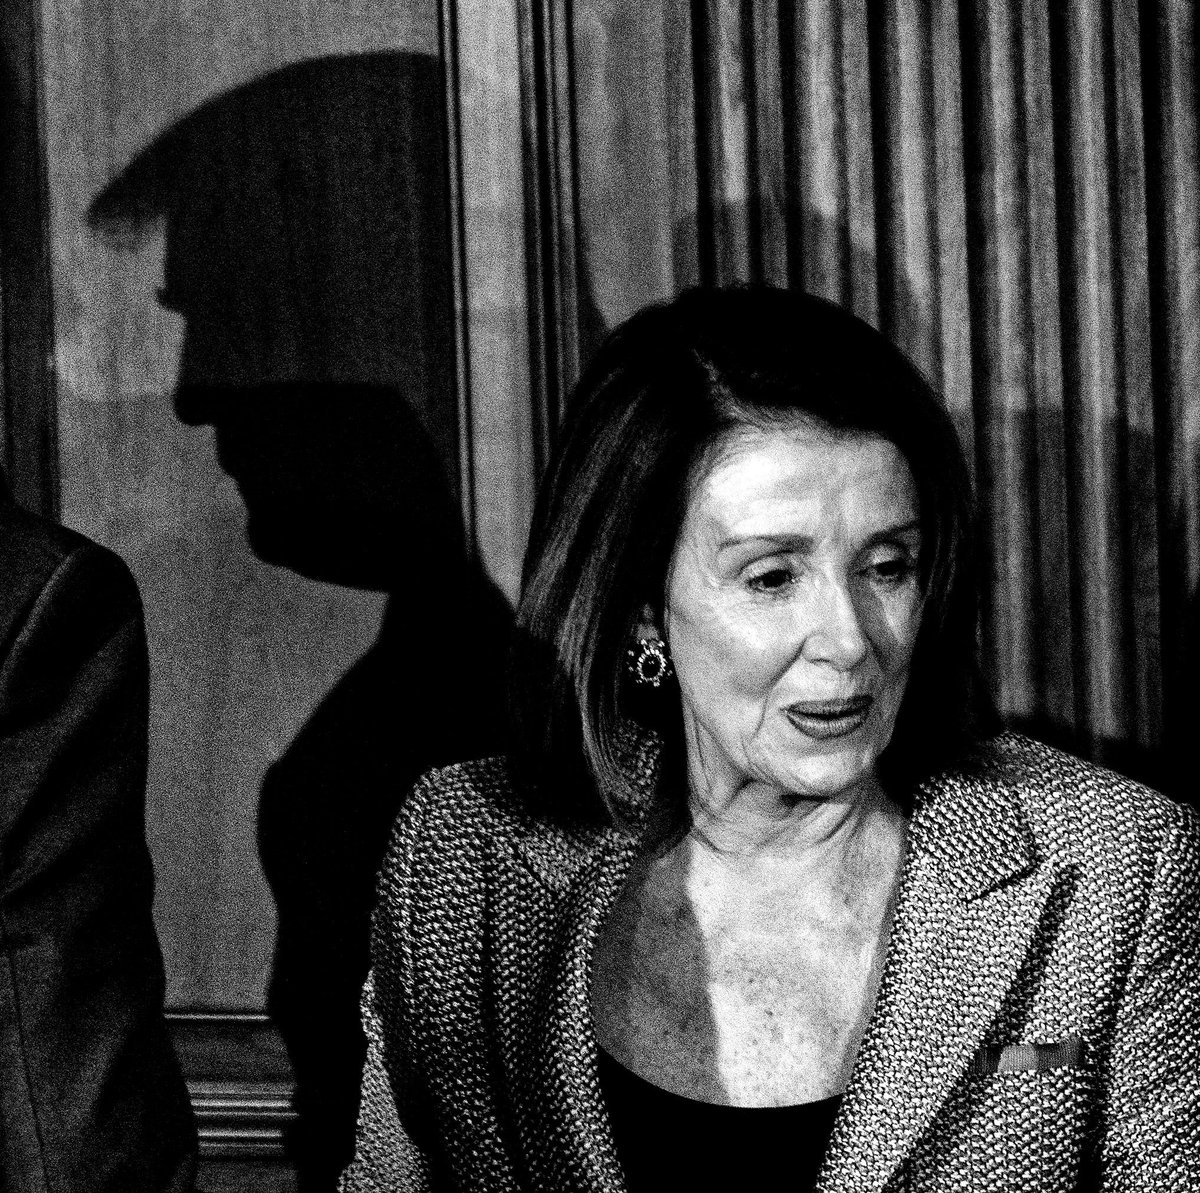 .@realDonaldTrump and @SpeakerPelosi pass each other during a Friends of Ireland luncheon on Capitol Hill.